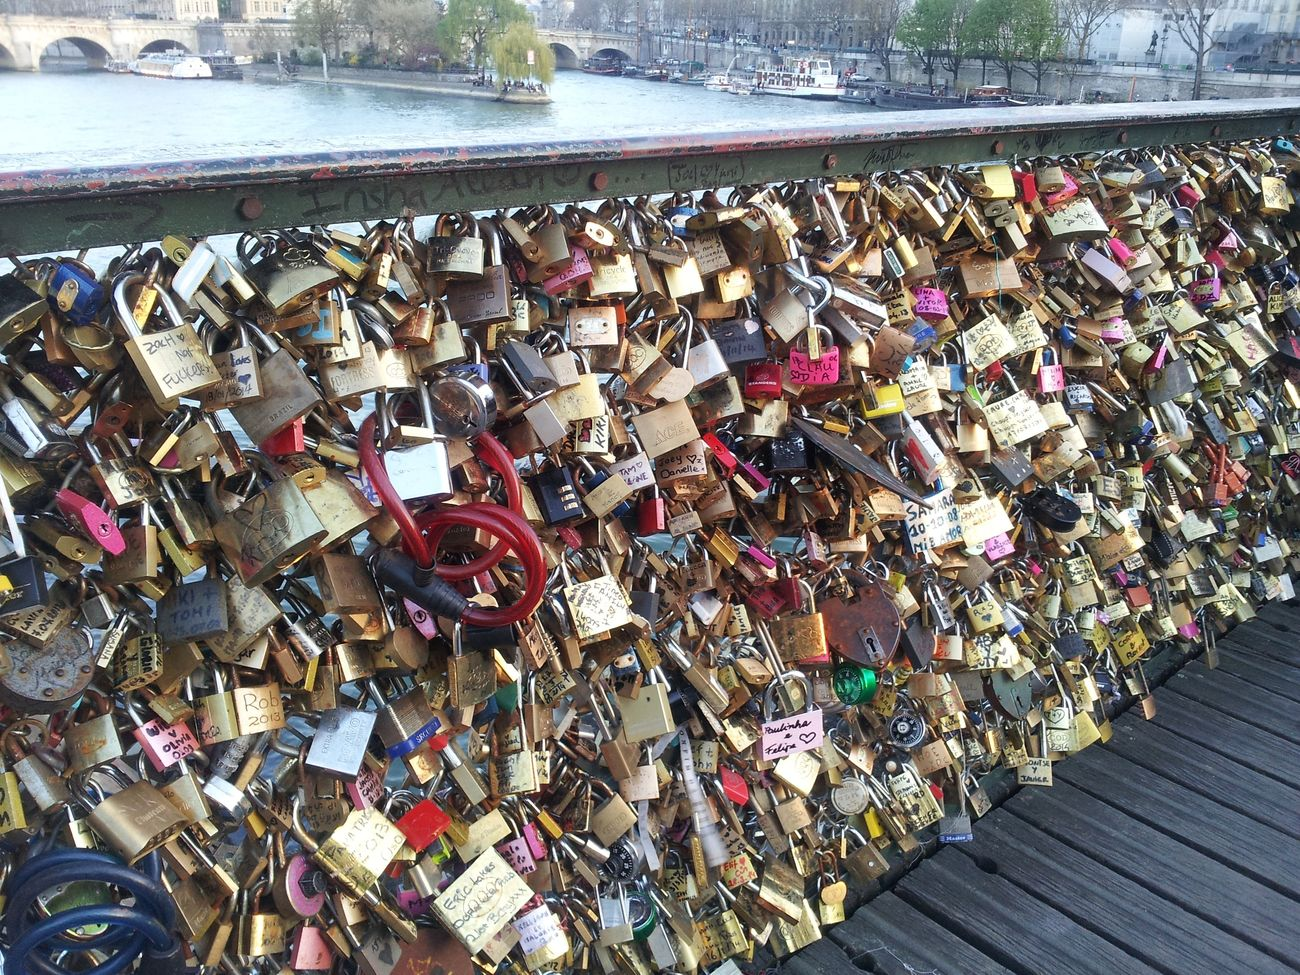 Abondance Bridges Close-up Full Frame La Seine Lock Love ♥ Metal Metalhead Metallic Padlock Pont Des Arts Paris Love Locks Bridge Souvenirs